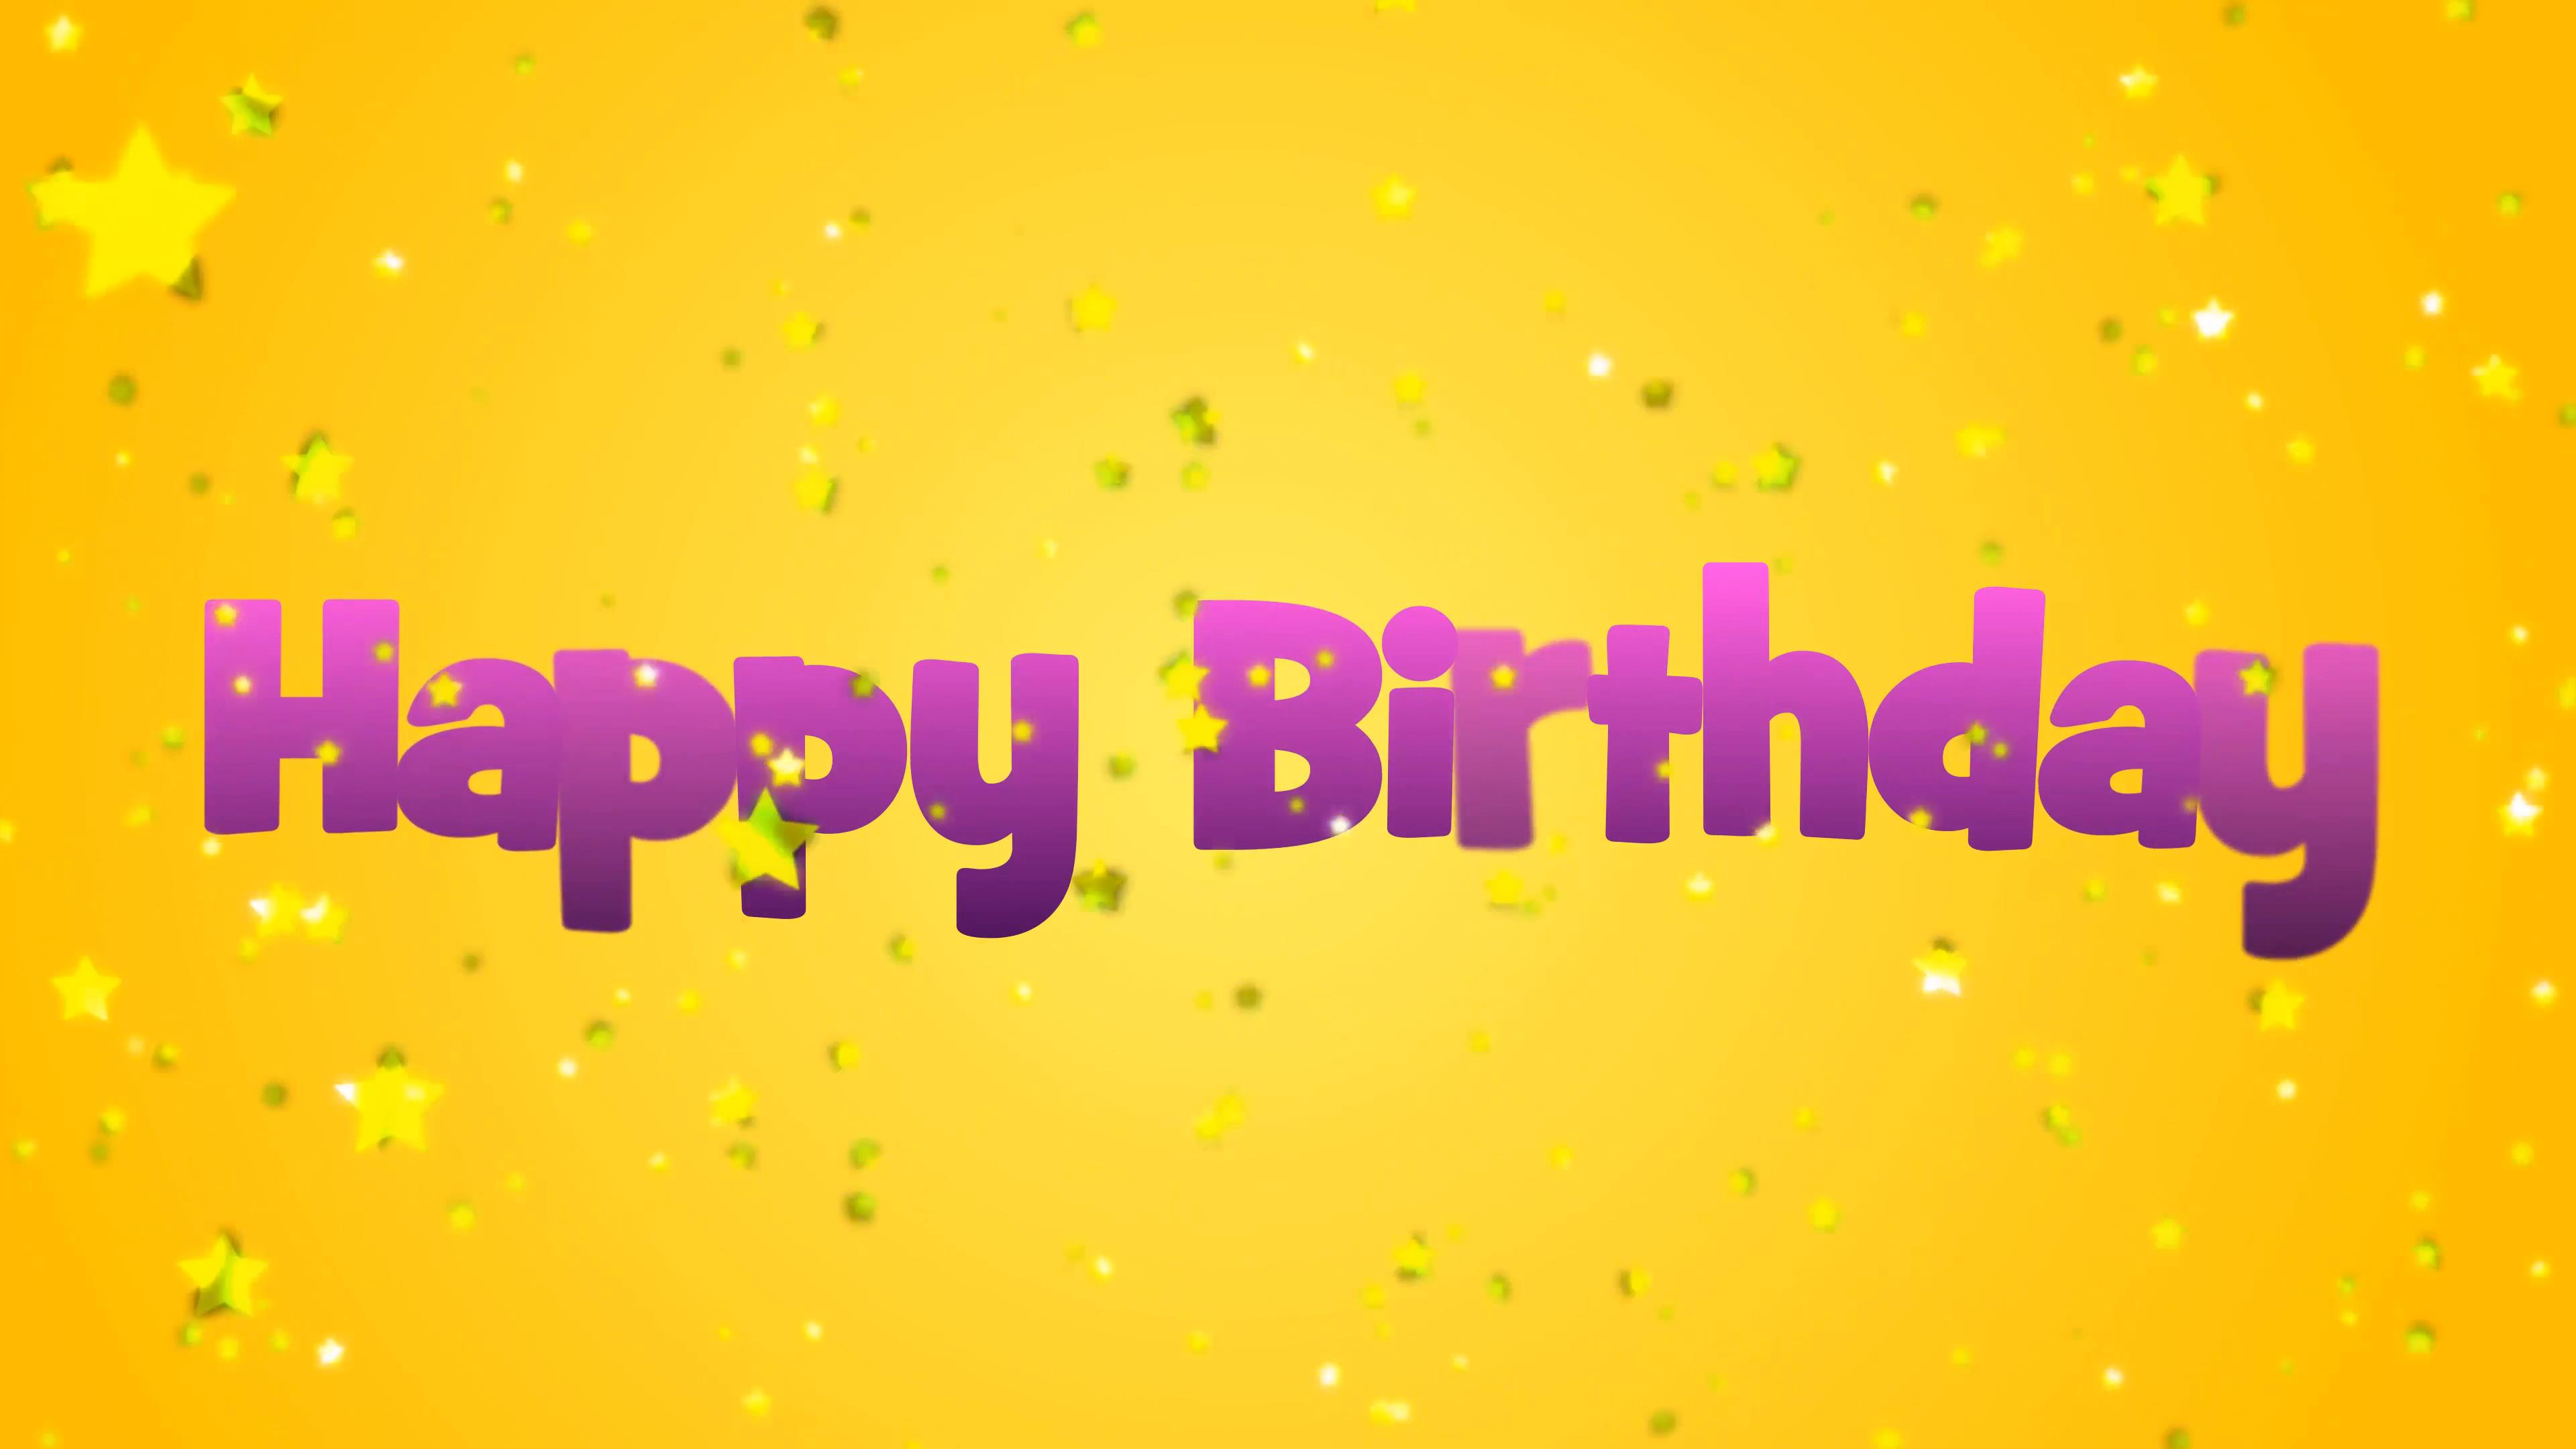 birthday message background ; happy-birthday-message-with-yellow-falling-stars-on-a-yellow-background_b6ssontf__F0009